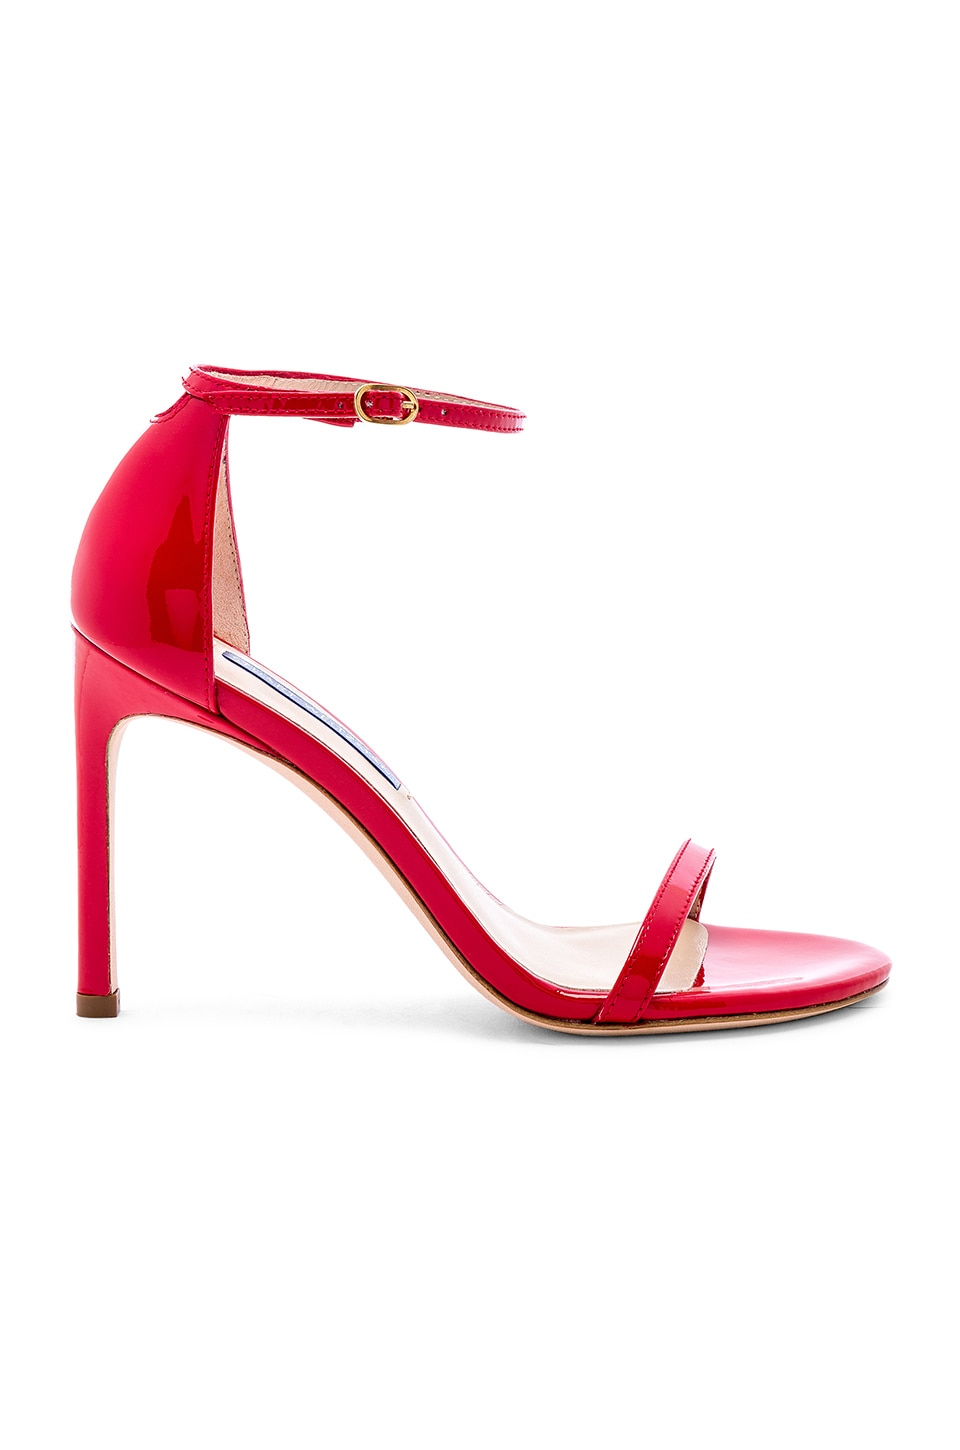 Stuart Weitzman Nudistsong Heel in Follow Me Red